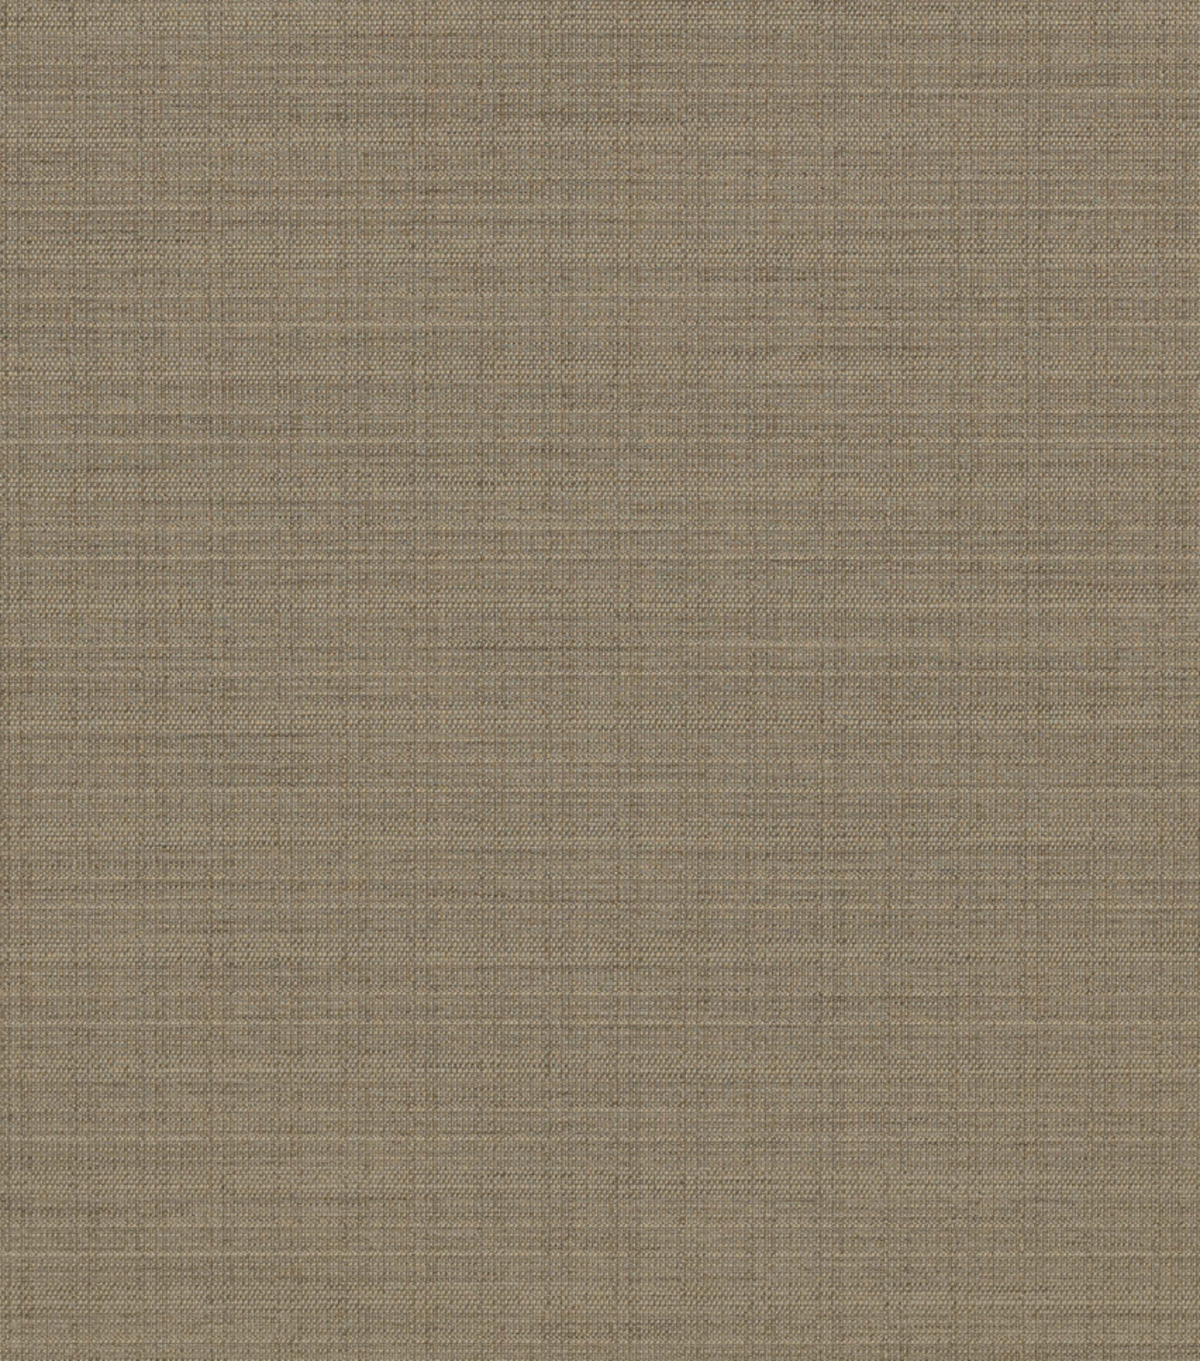 Crypton Upholstery Decor Fabric 54\u0022-Boca Grout